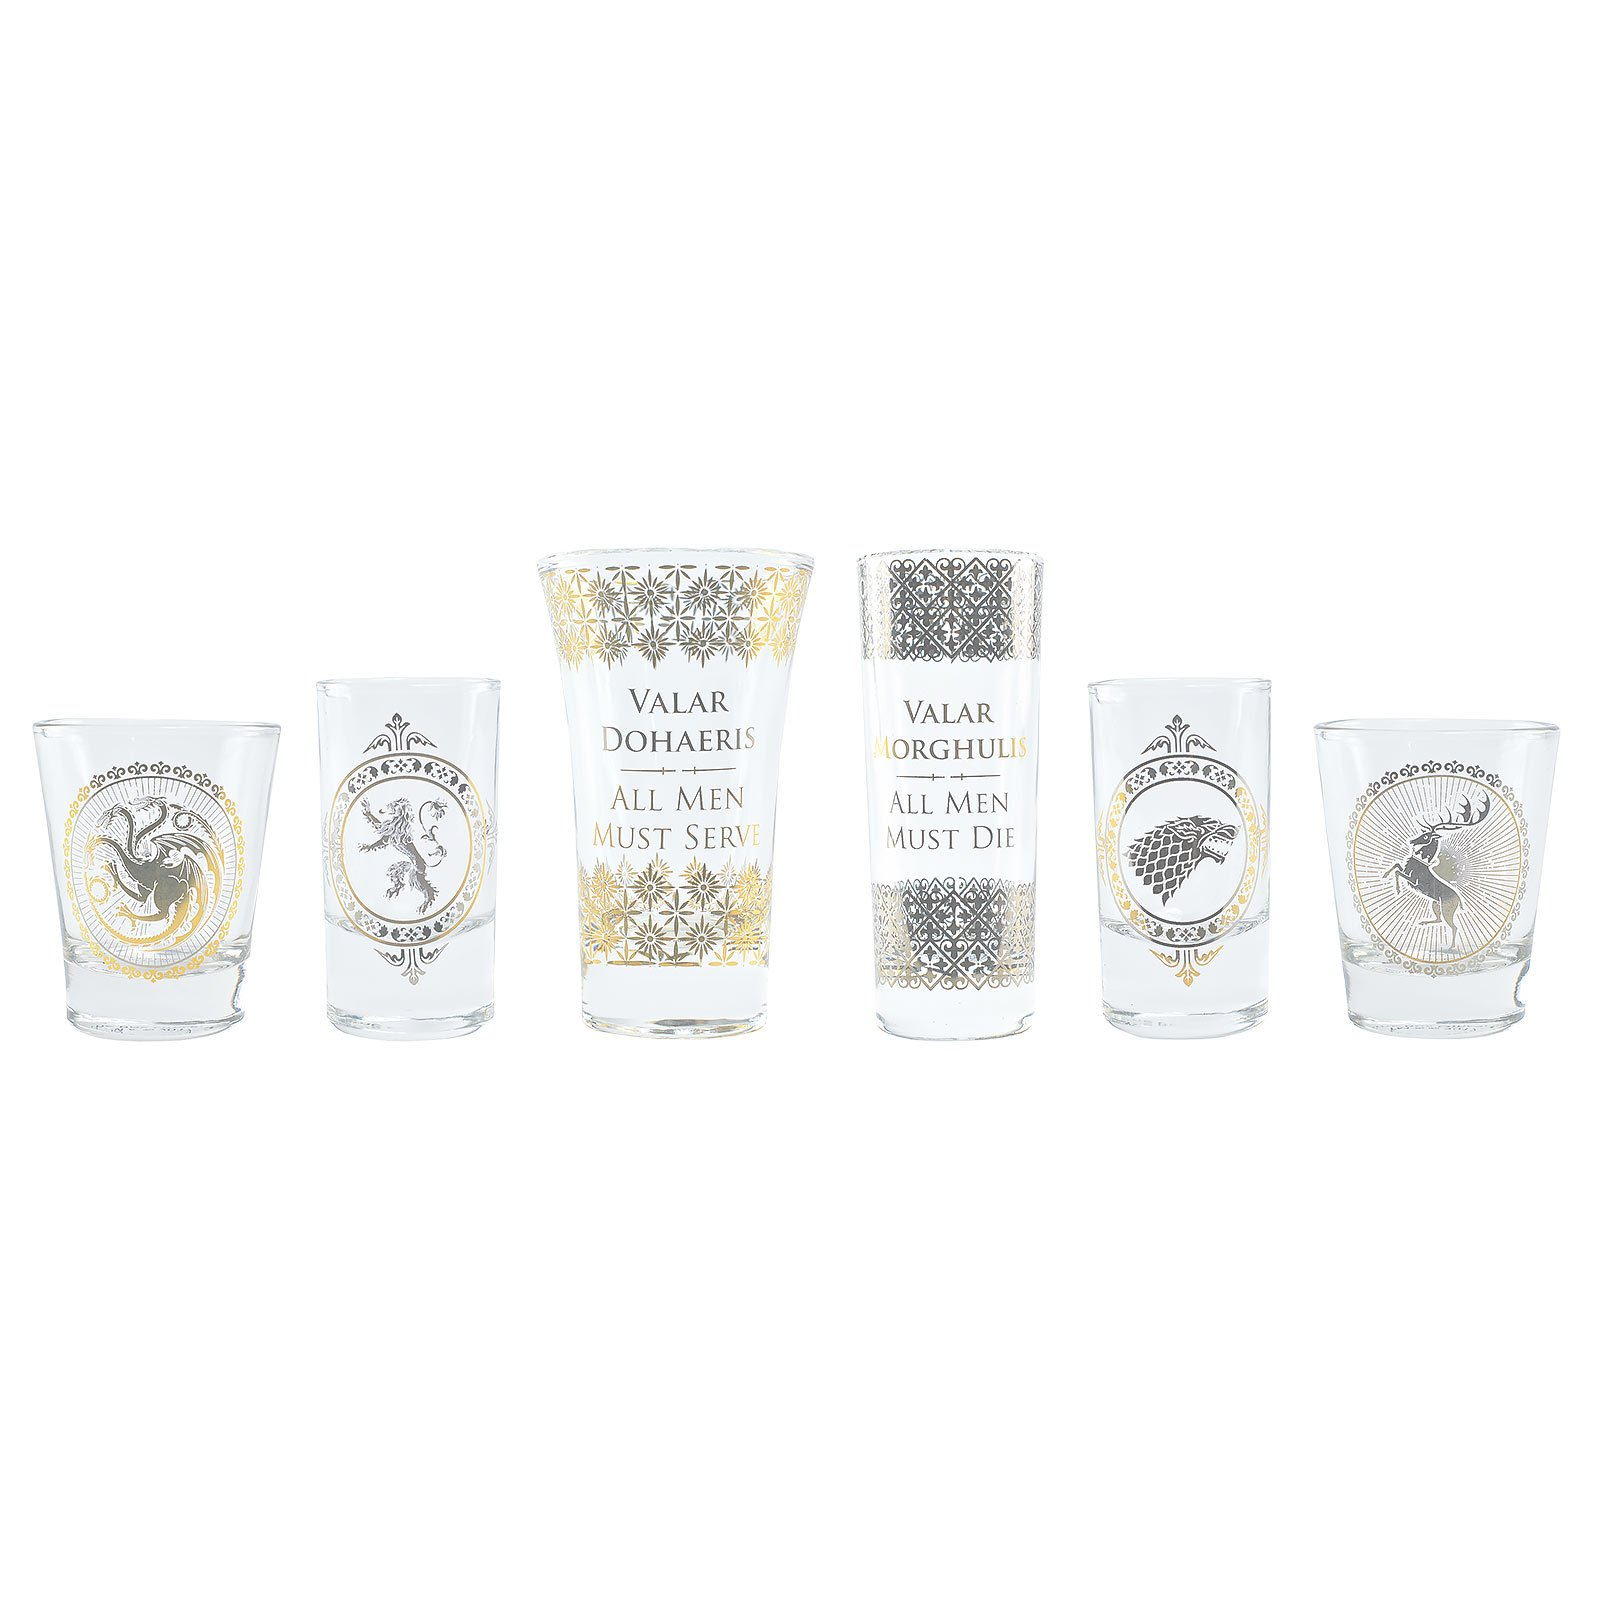 Game Of Thrones Shot Glass Set - Black And Gold Premium